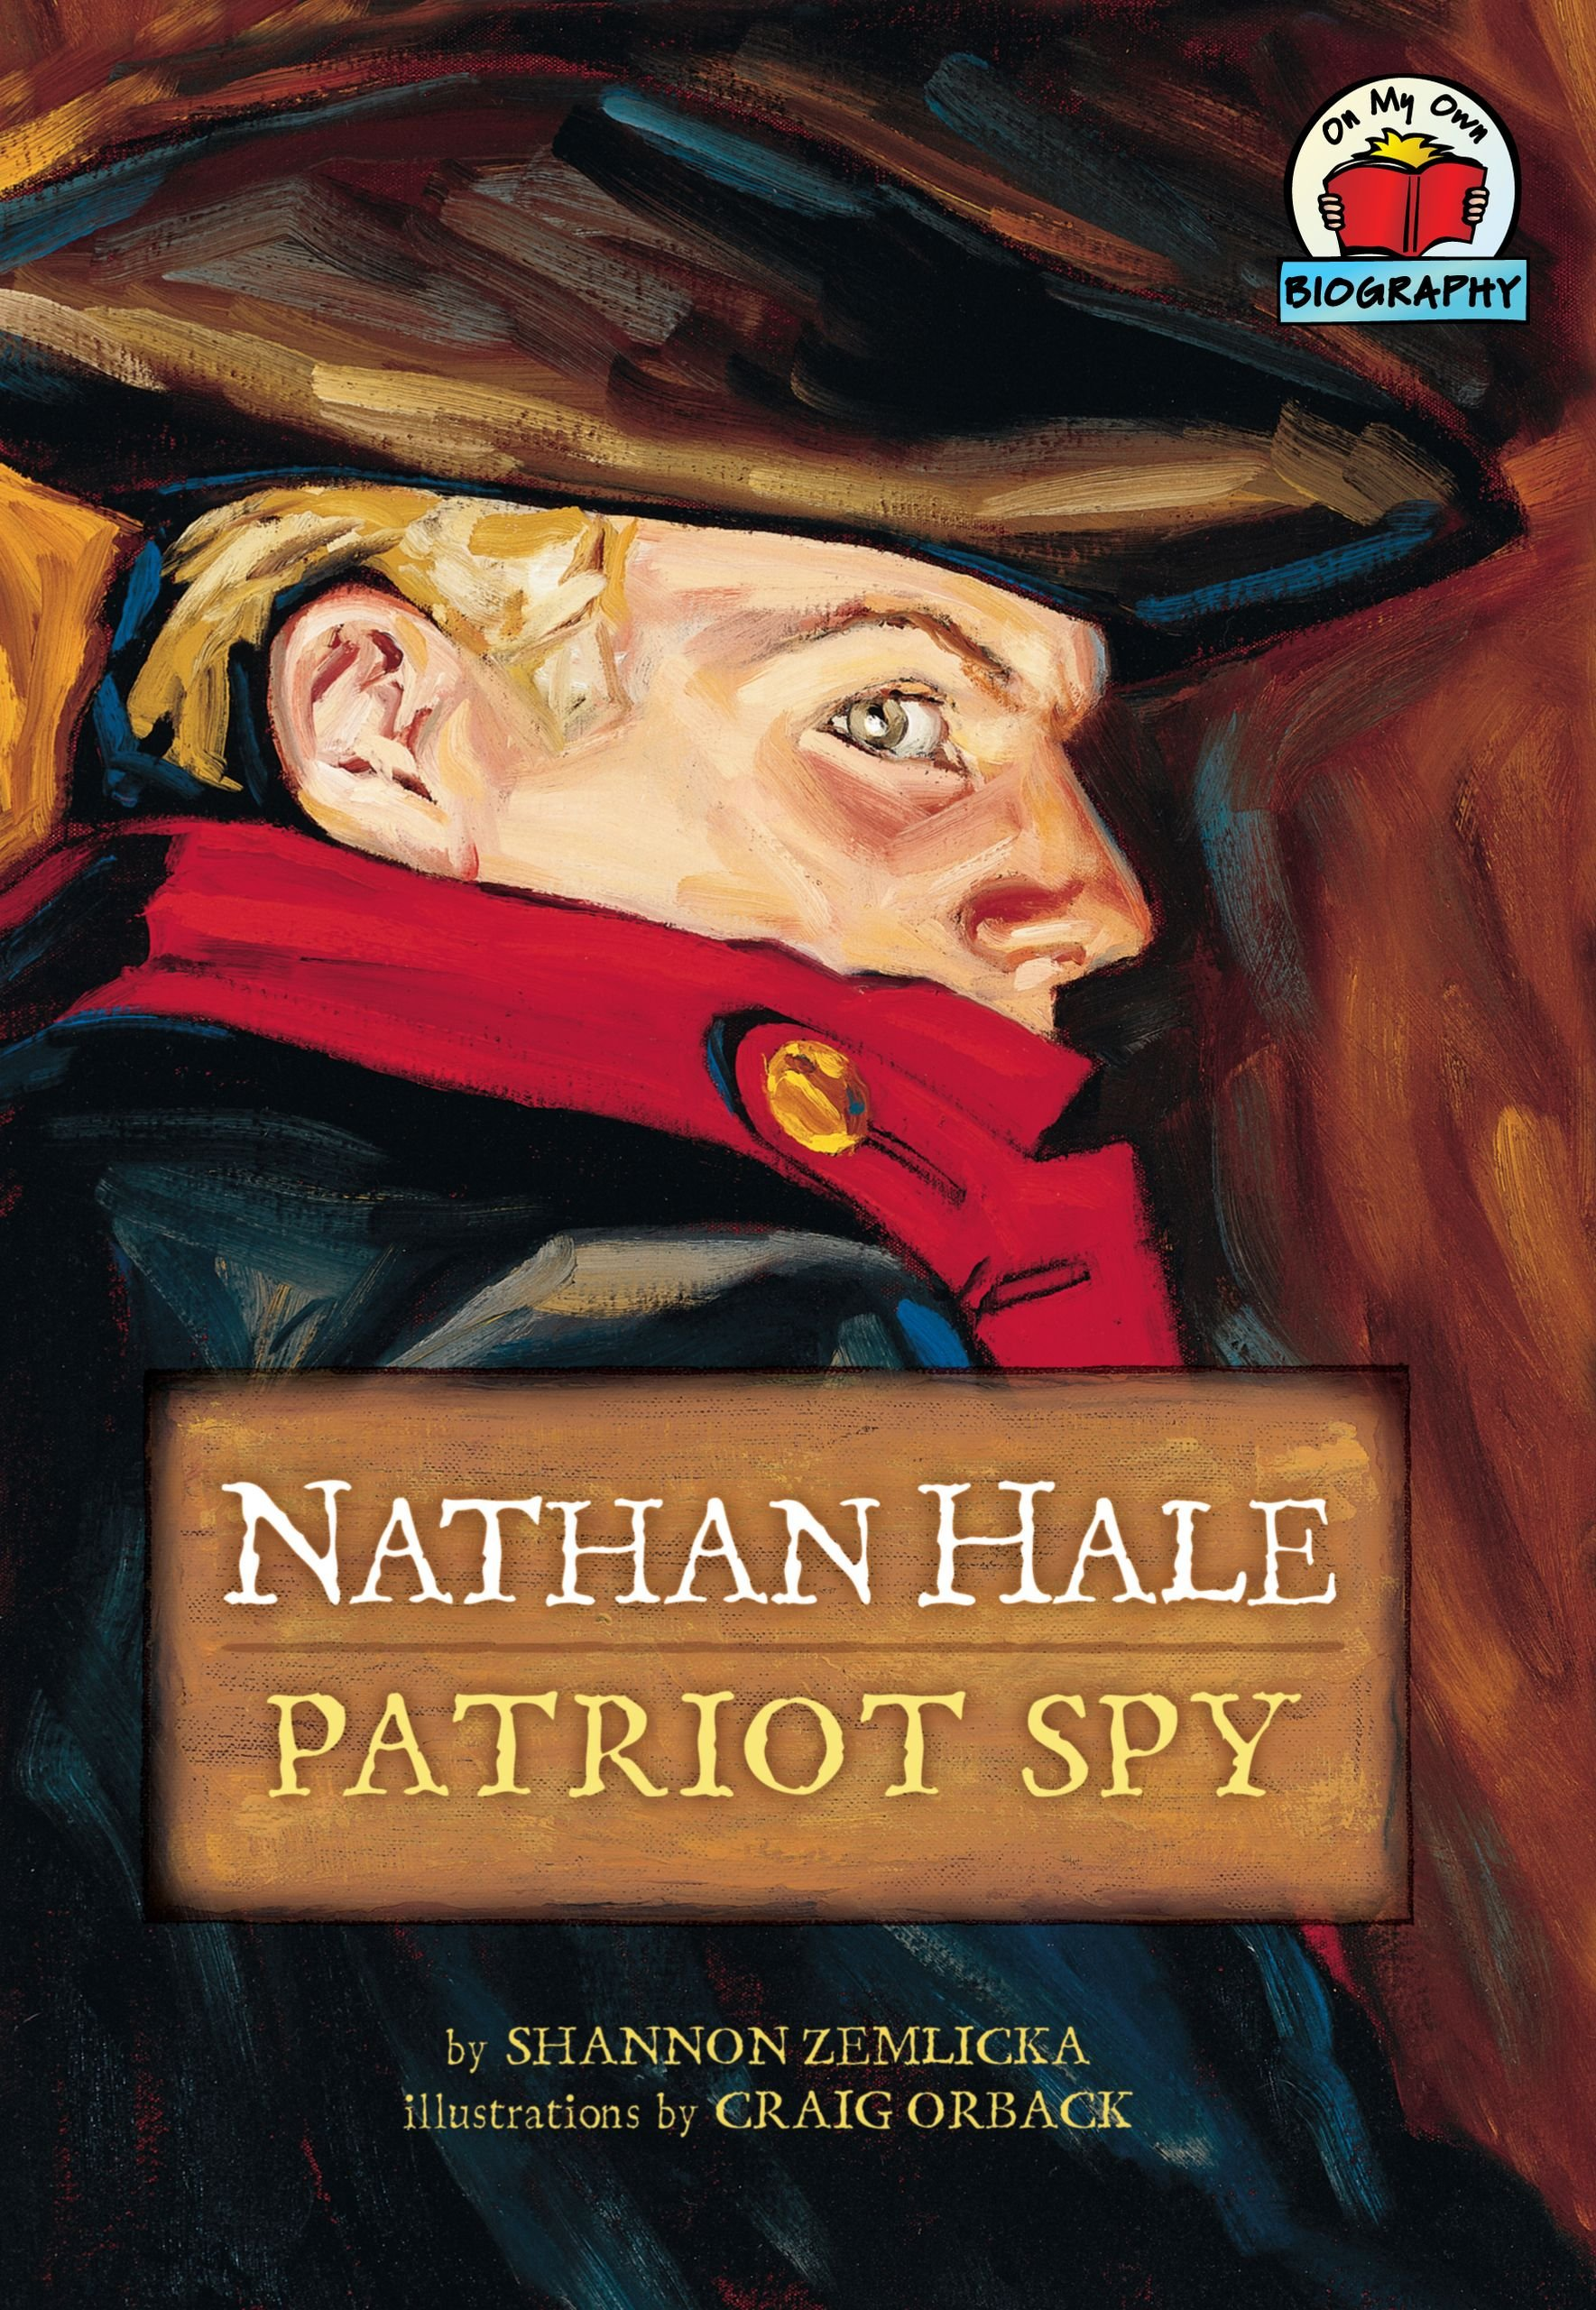 Download Nathan Hale: Patriot Spy (On My Own Biography) ebook